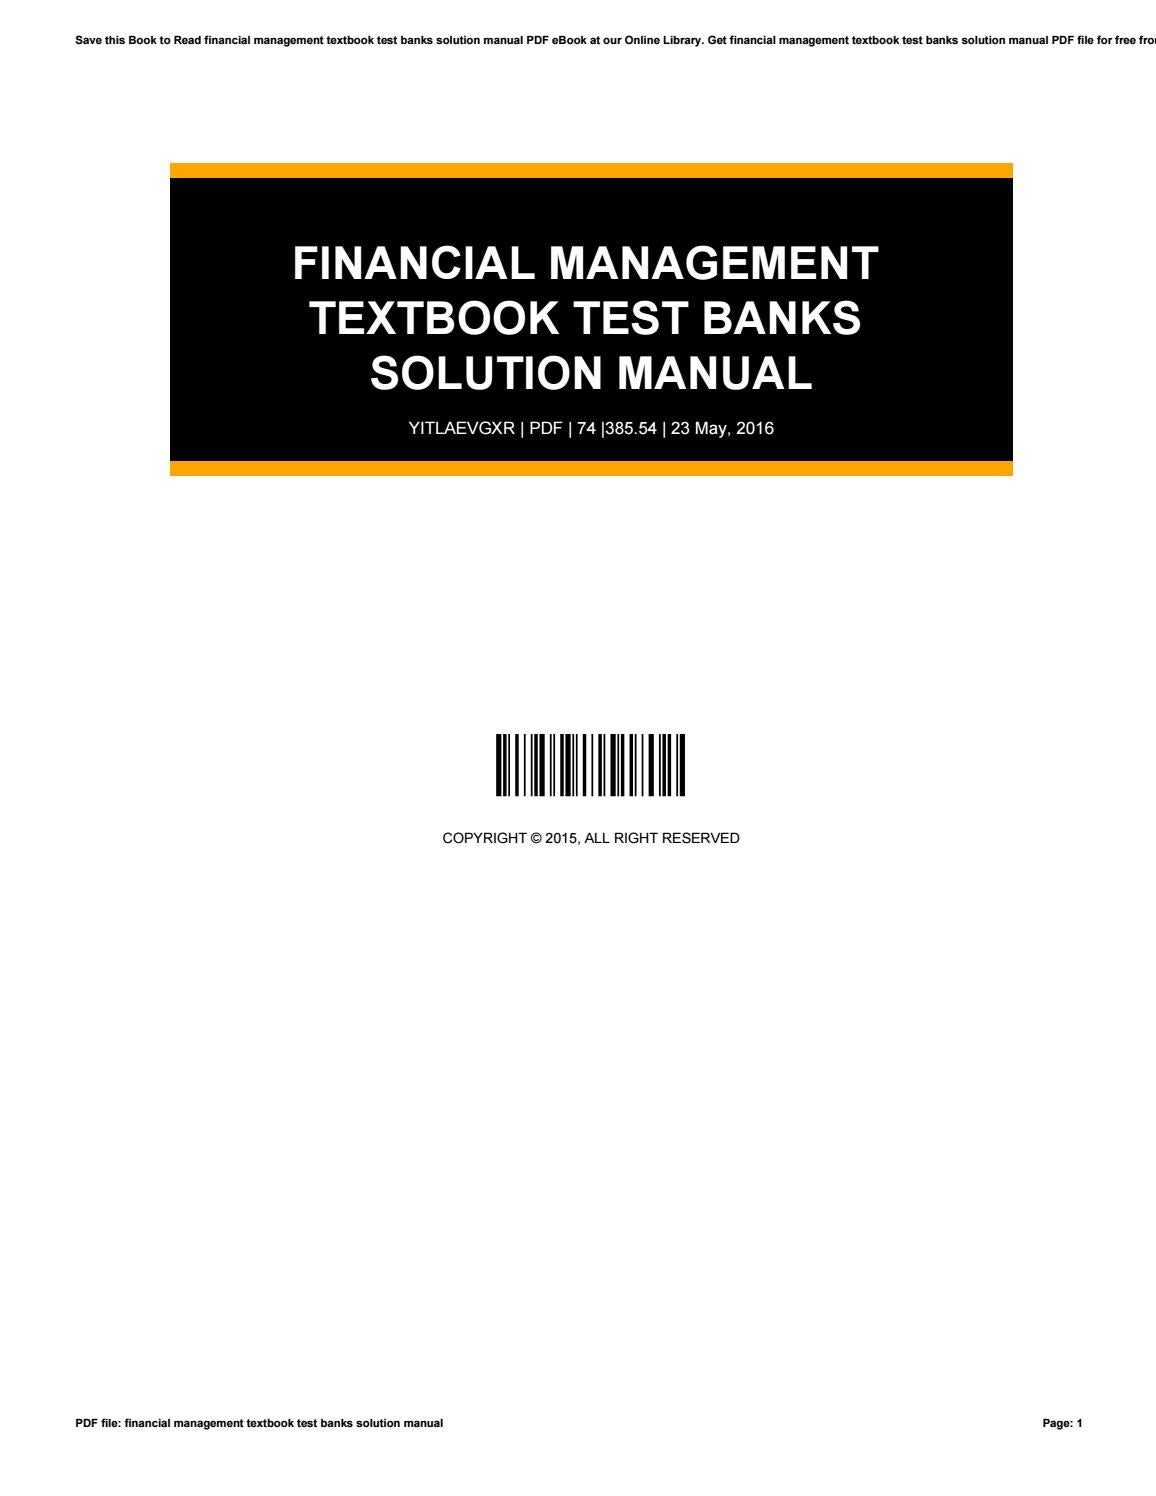 Financial management textbook test banks solution manual by  WillieClifford4144 - issuu